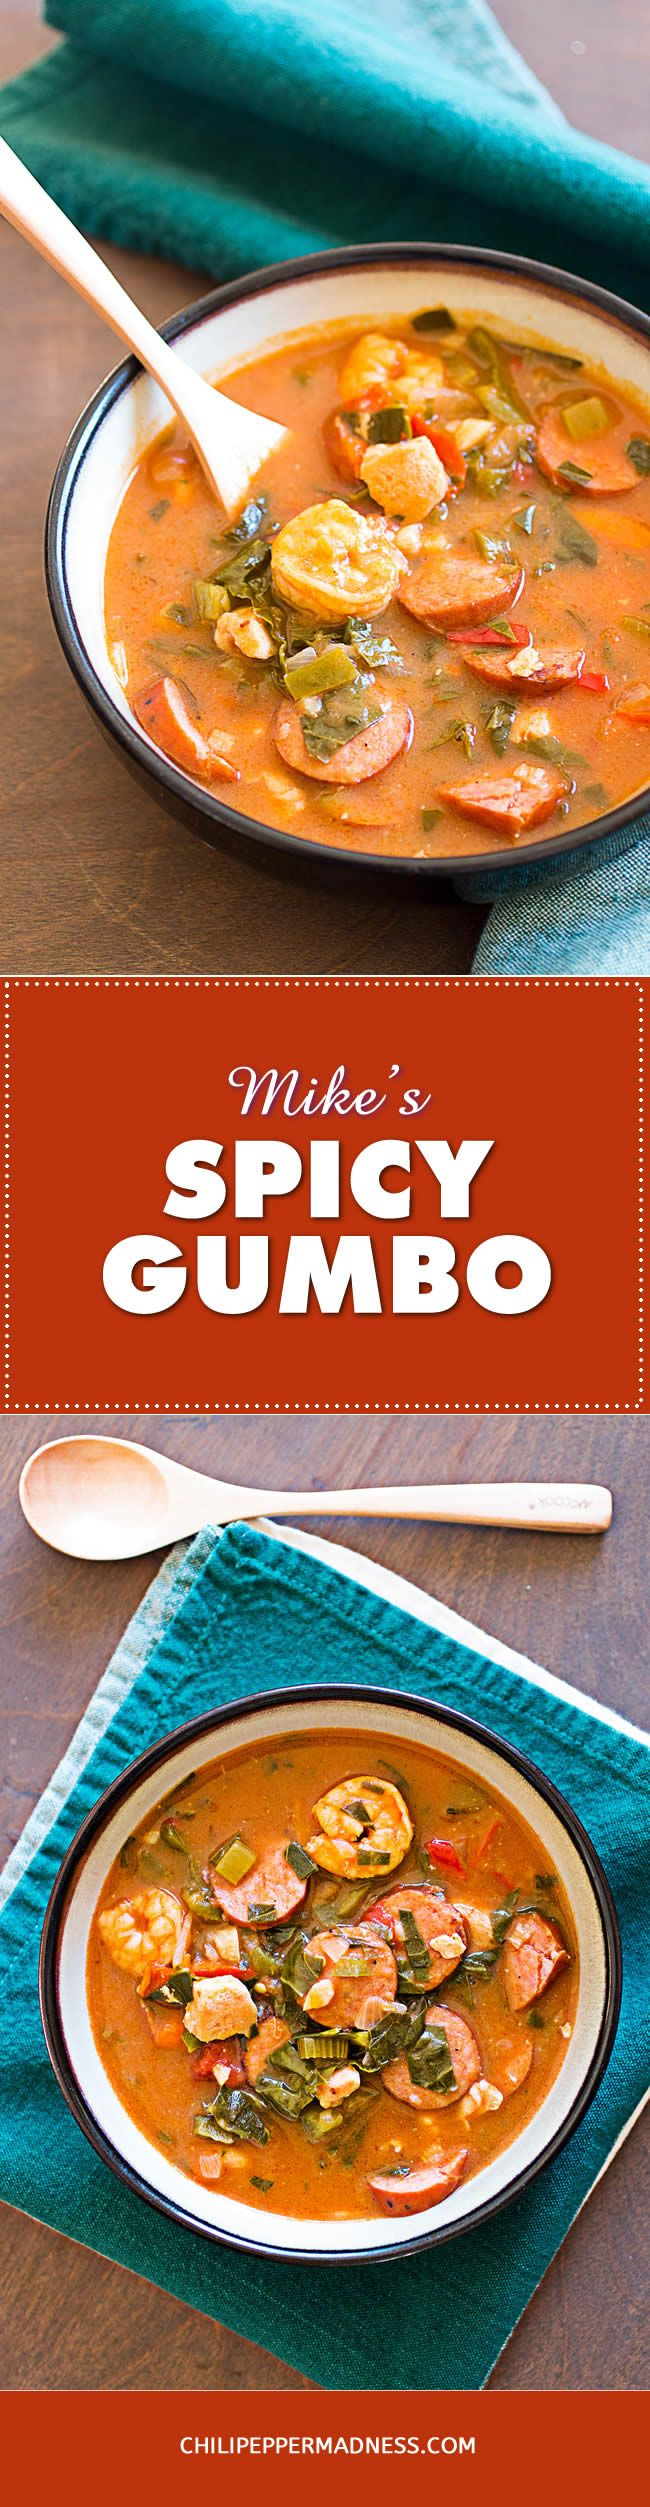 Mike's Spicy Gumbo - This is one of my favorite gumbo recipes made extra spicy with shrimp, chicken, andouille and LOADS of flavor. You can easily adjust the heat level to your own preference.